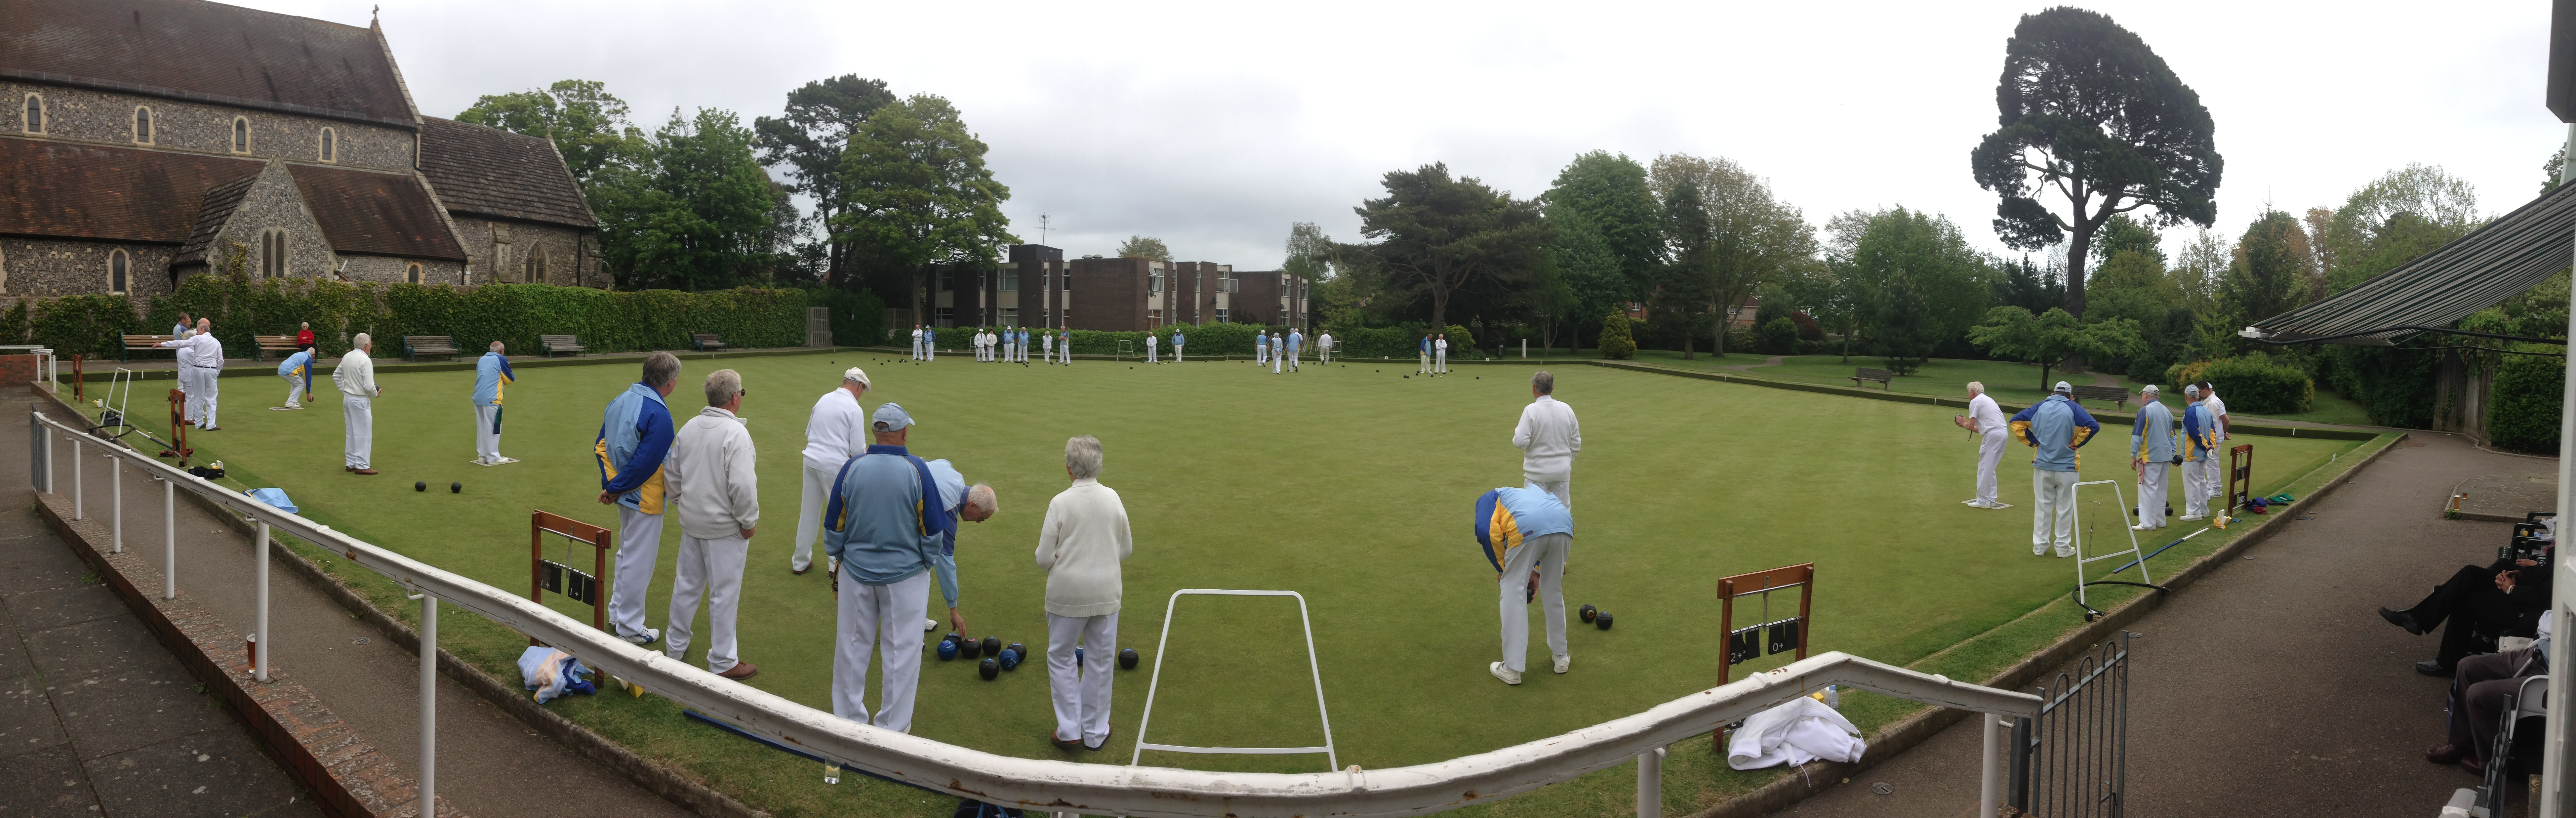 PRIORY V CAWSTON MAY 2015.JPG